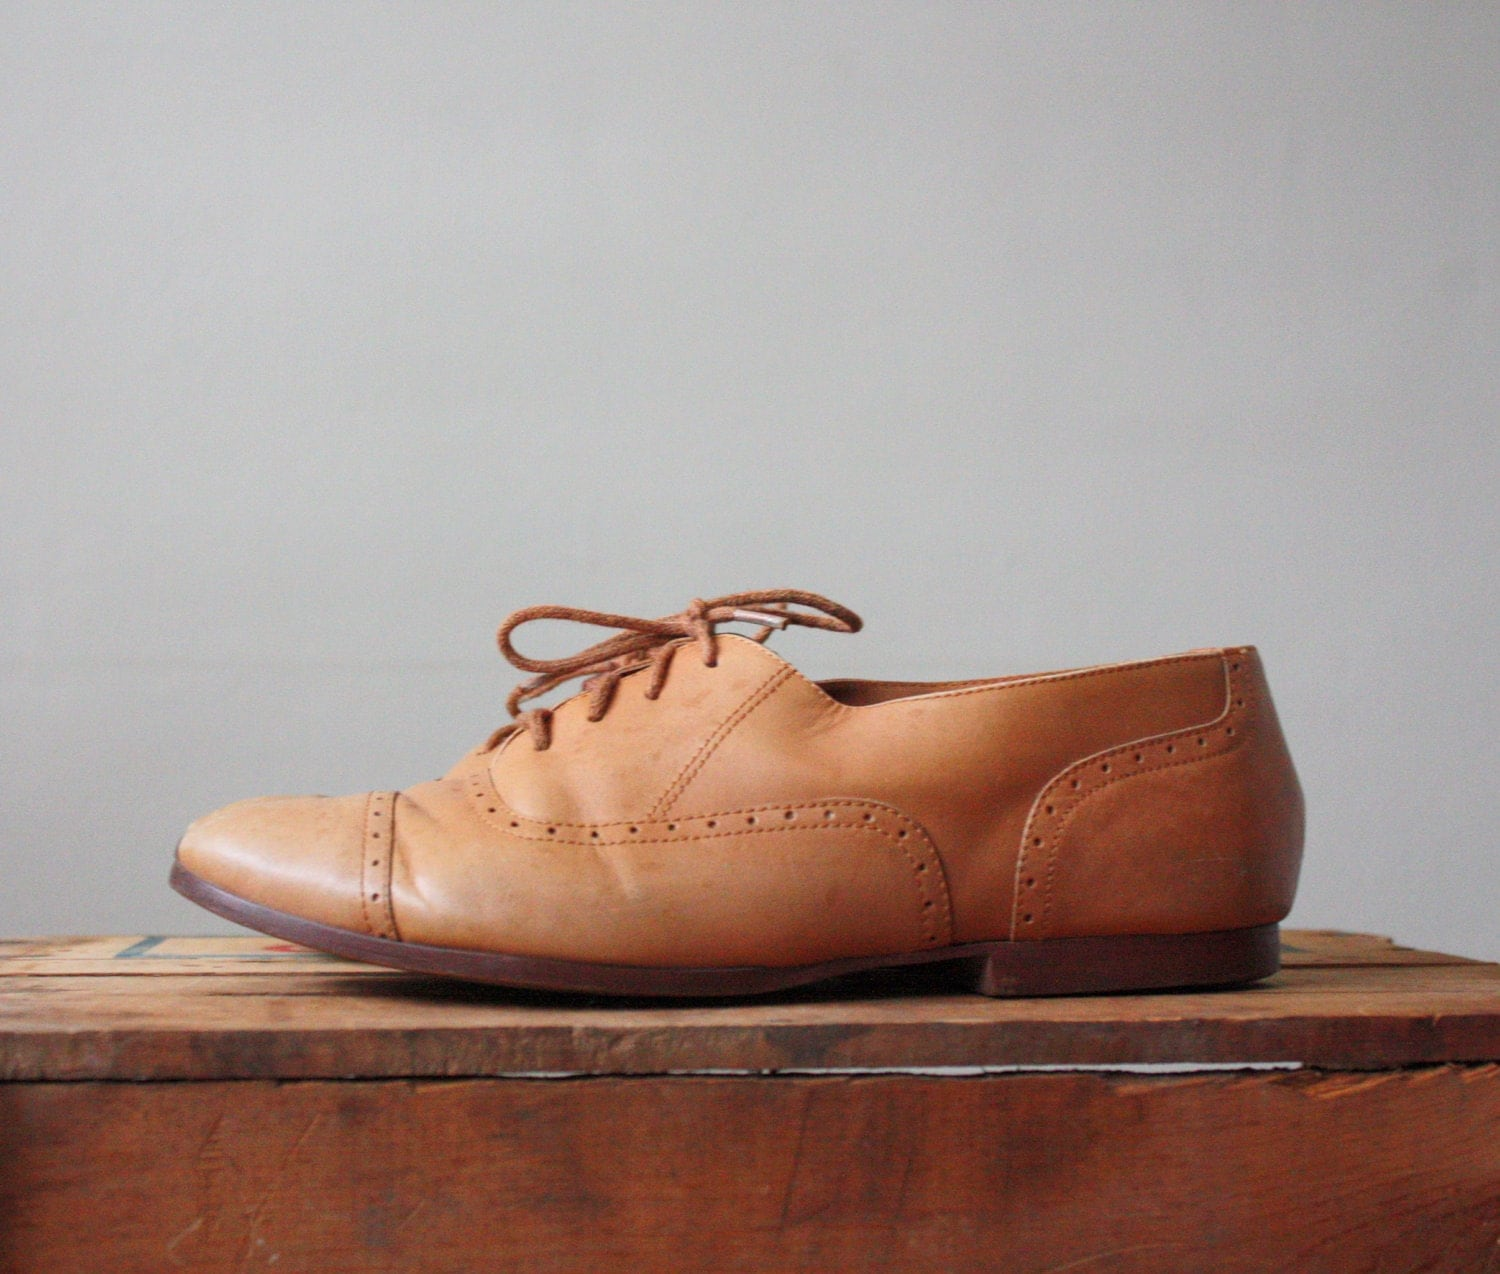 vintage 1970's leather oxfords - size 8 1/2